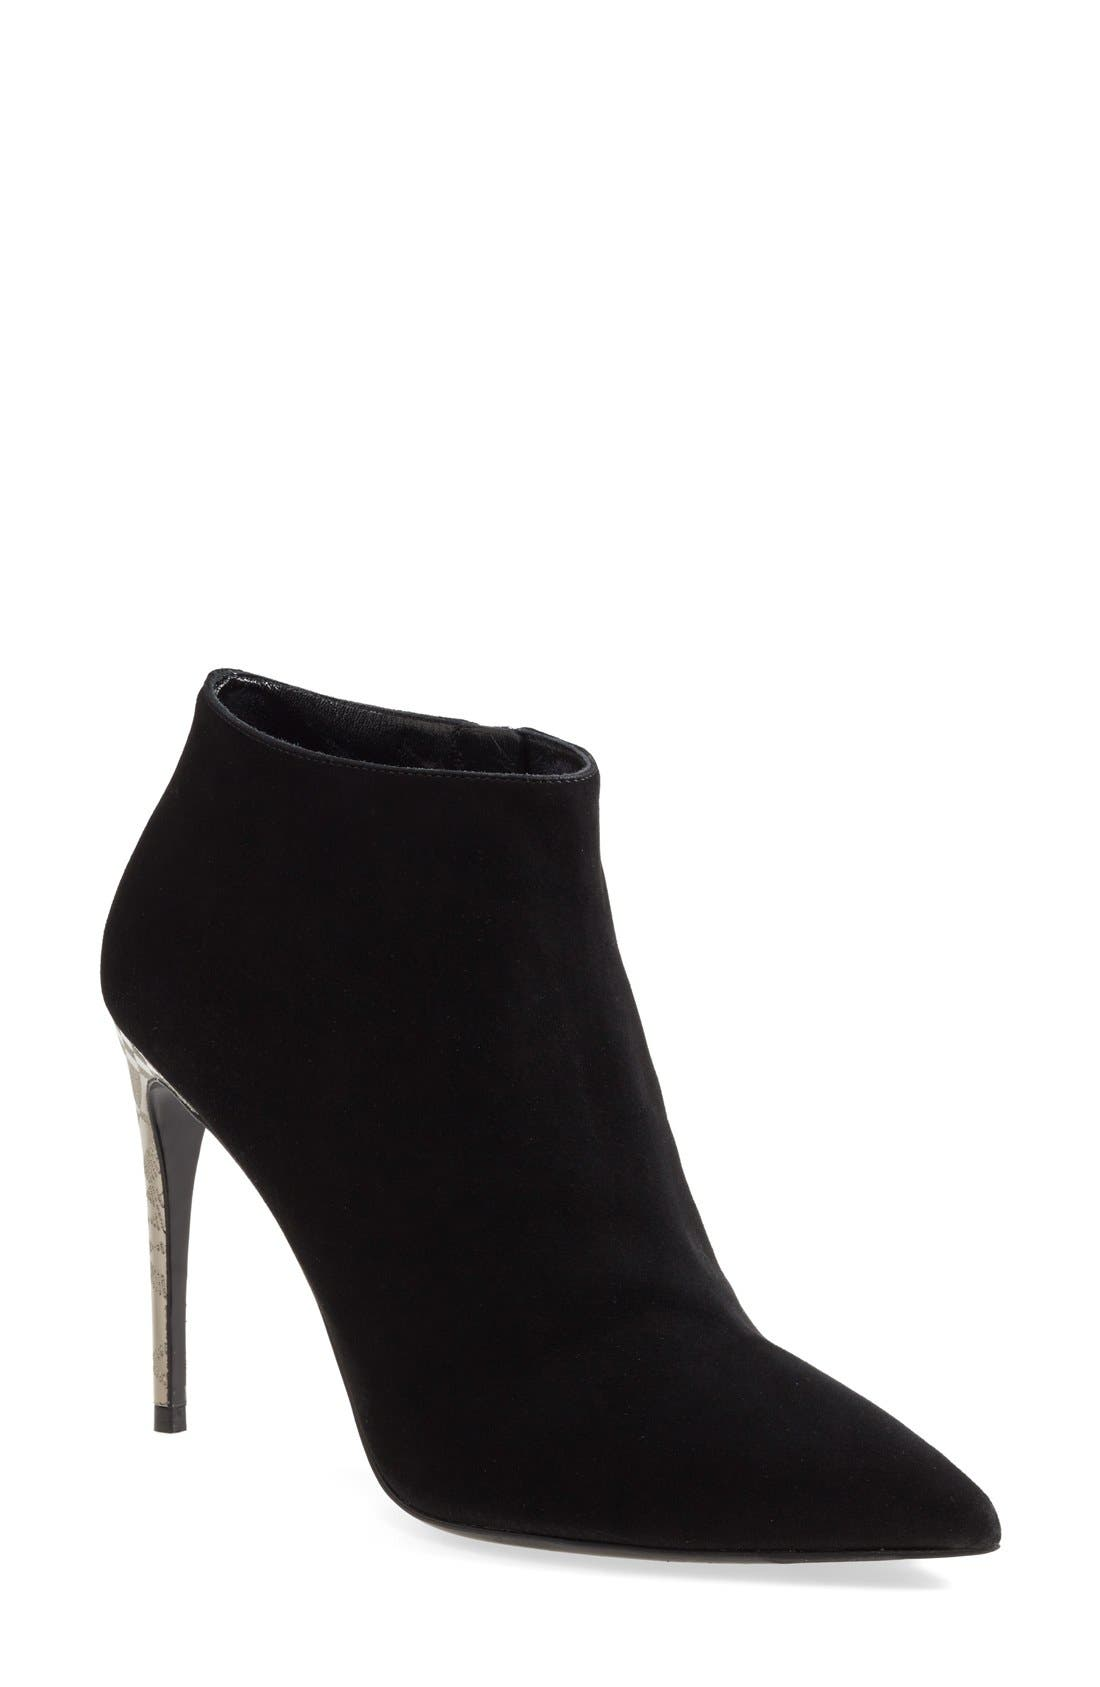 Alternate Image 1 Selected - Burberry 'Estover' Engraved Heel Suede Boot